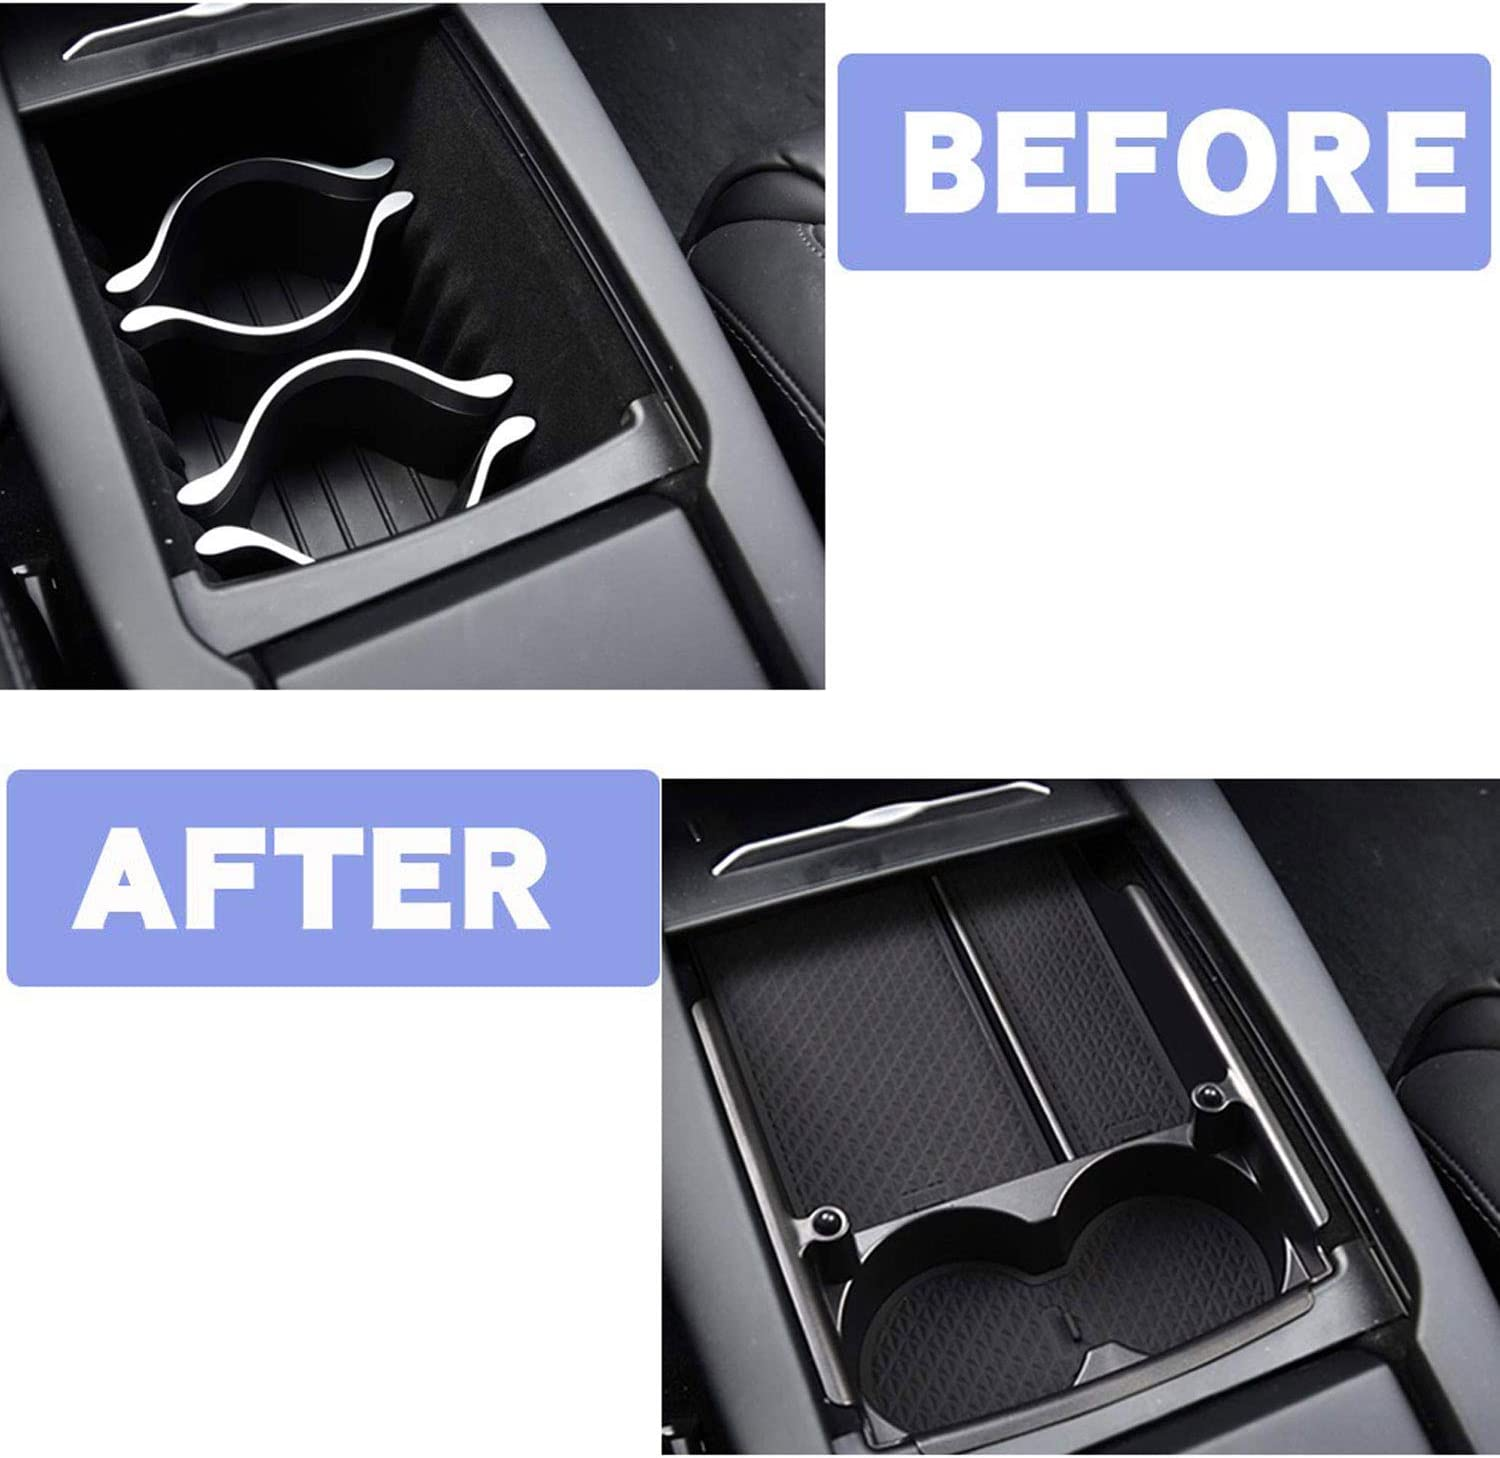 Wadoy Center Console Organizer Replacement for Tesla Model S X 2016 2017 2018 Armrest Storage Box with Cup Holder